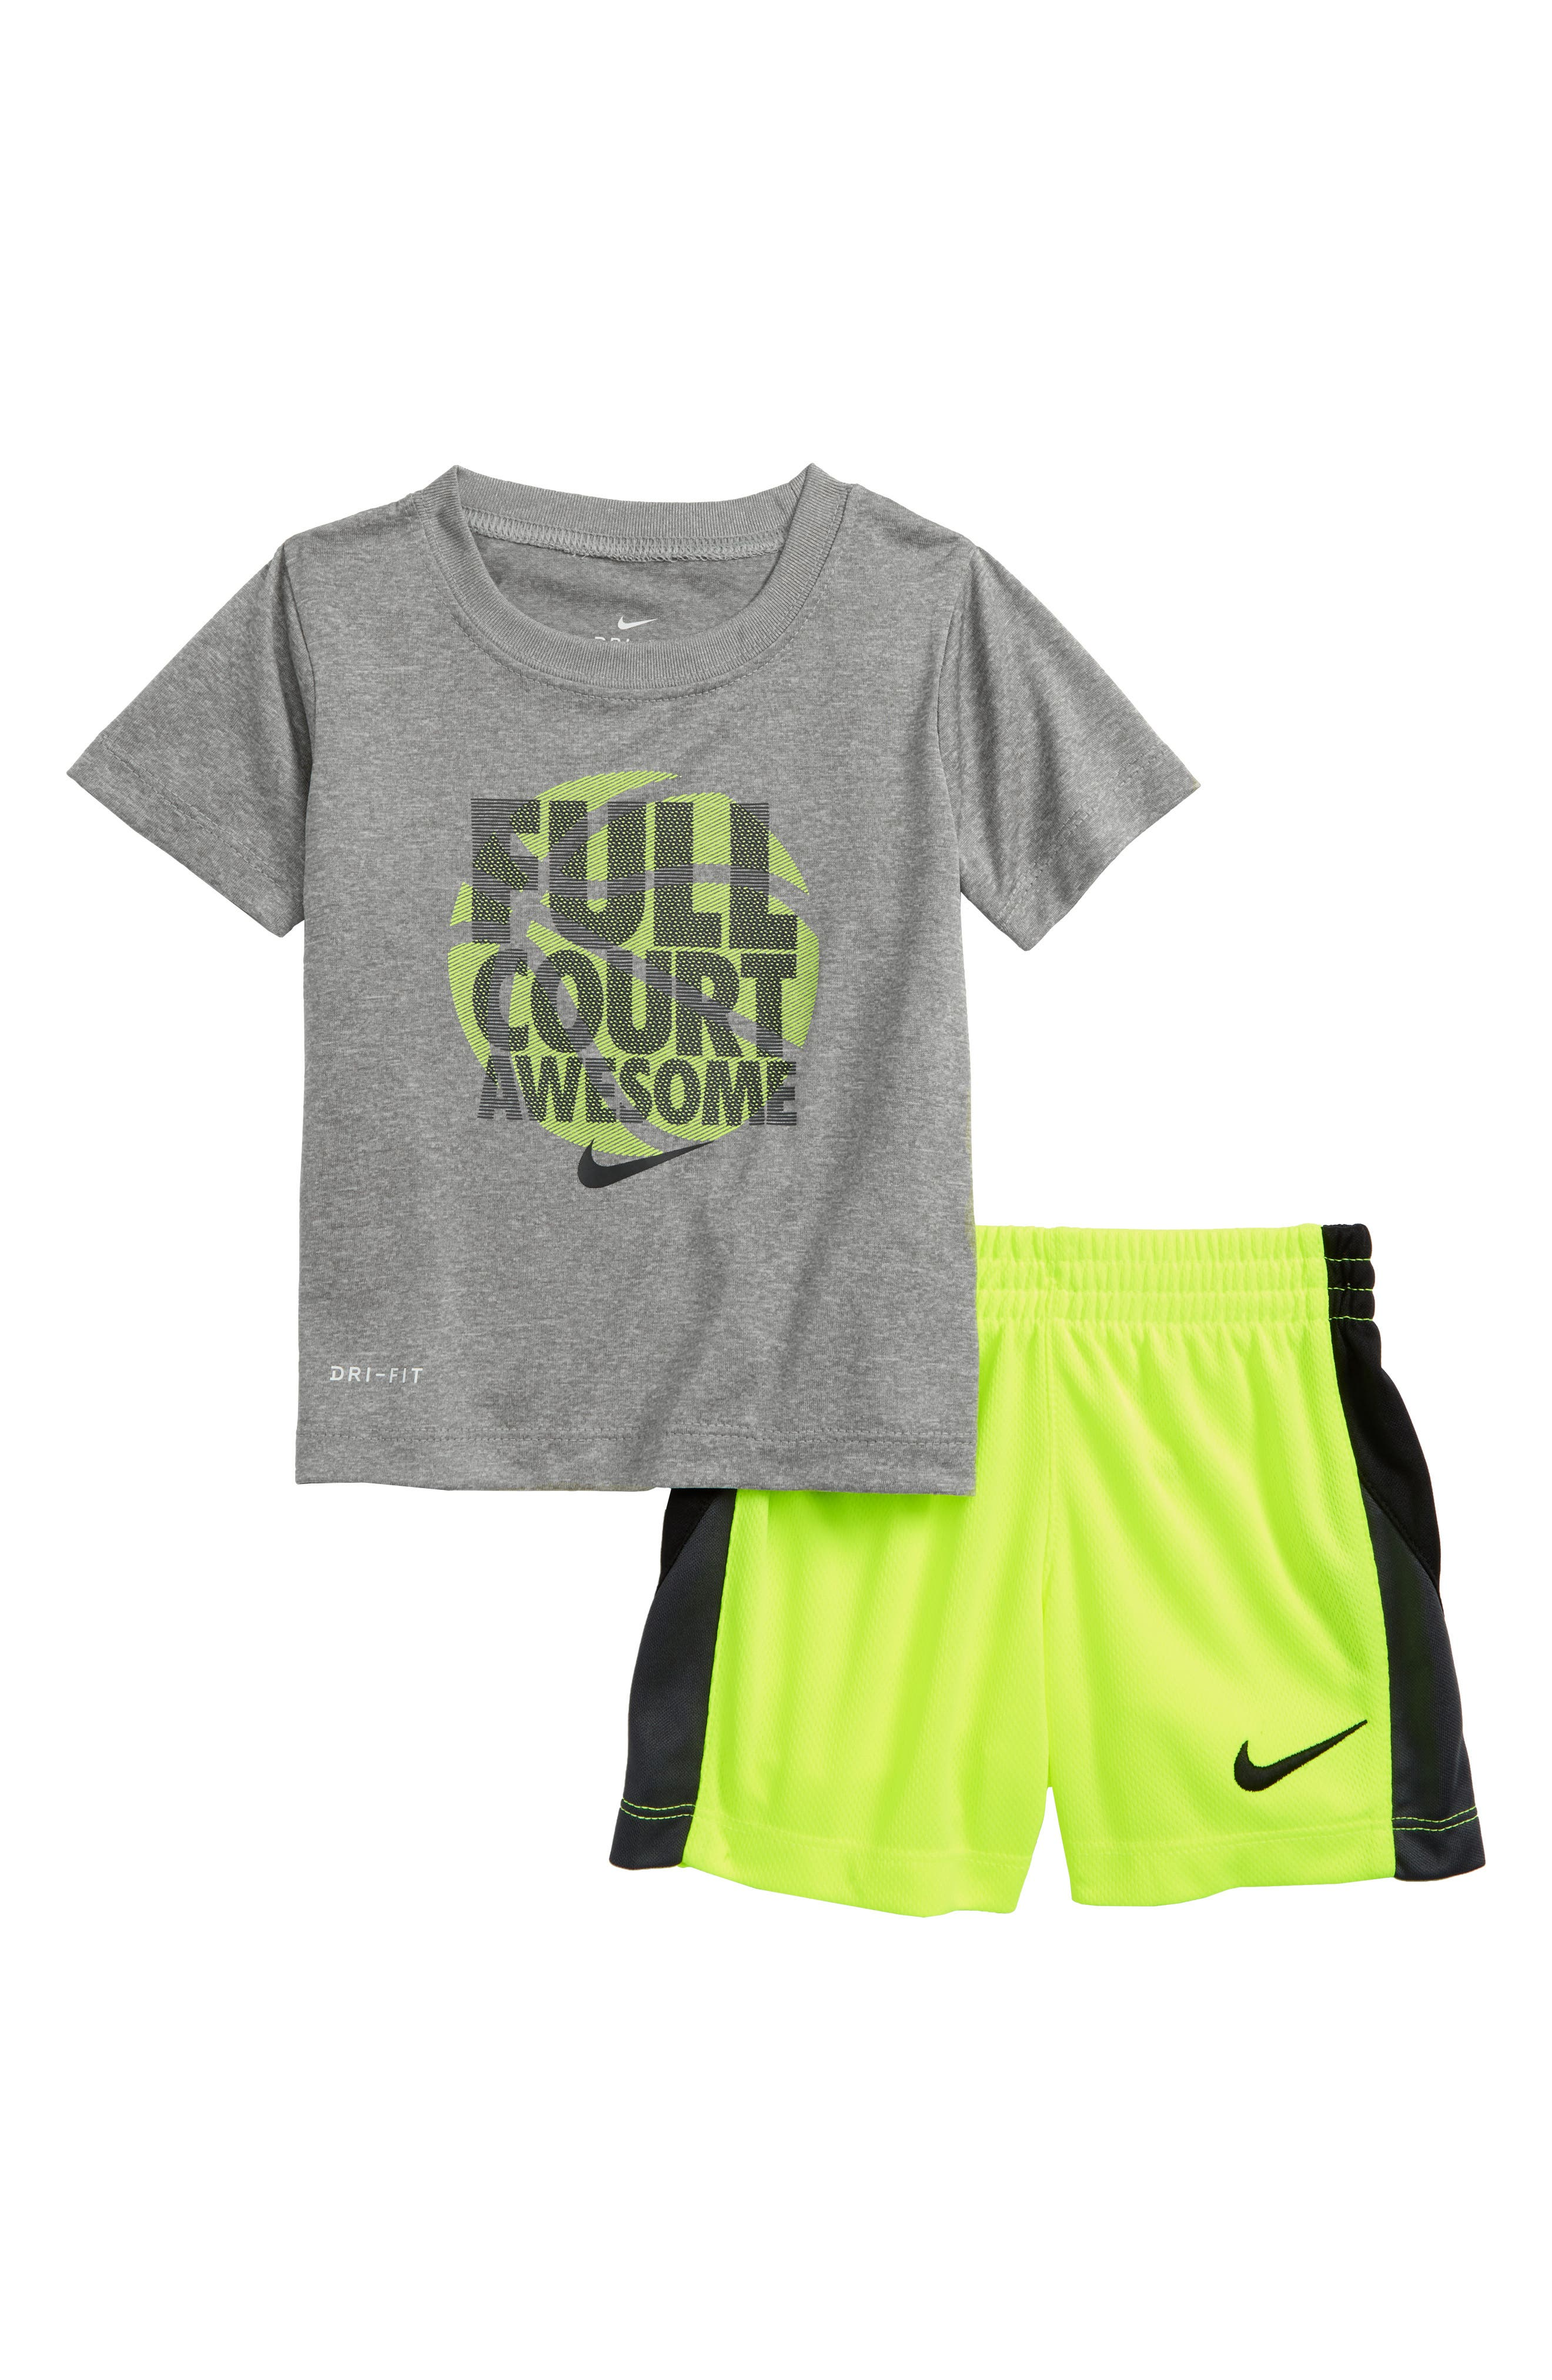 Dry Full Court Awesome Shirt & Shorts Set,                         Main,                         color, Dark Grey Heather